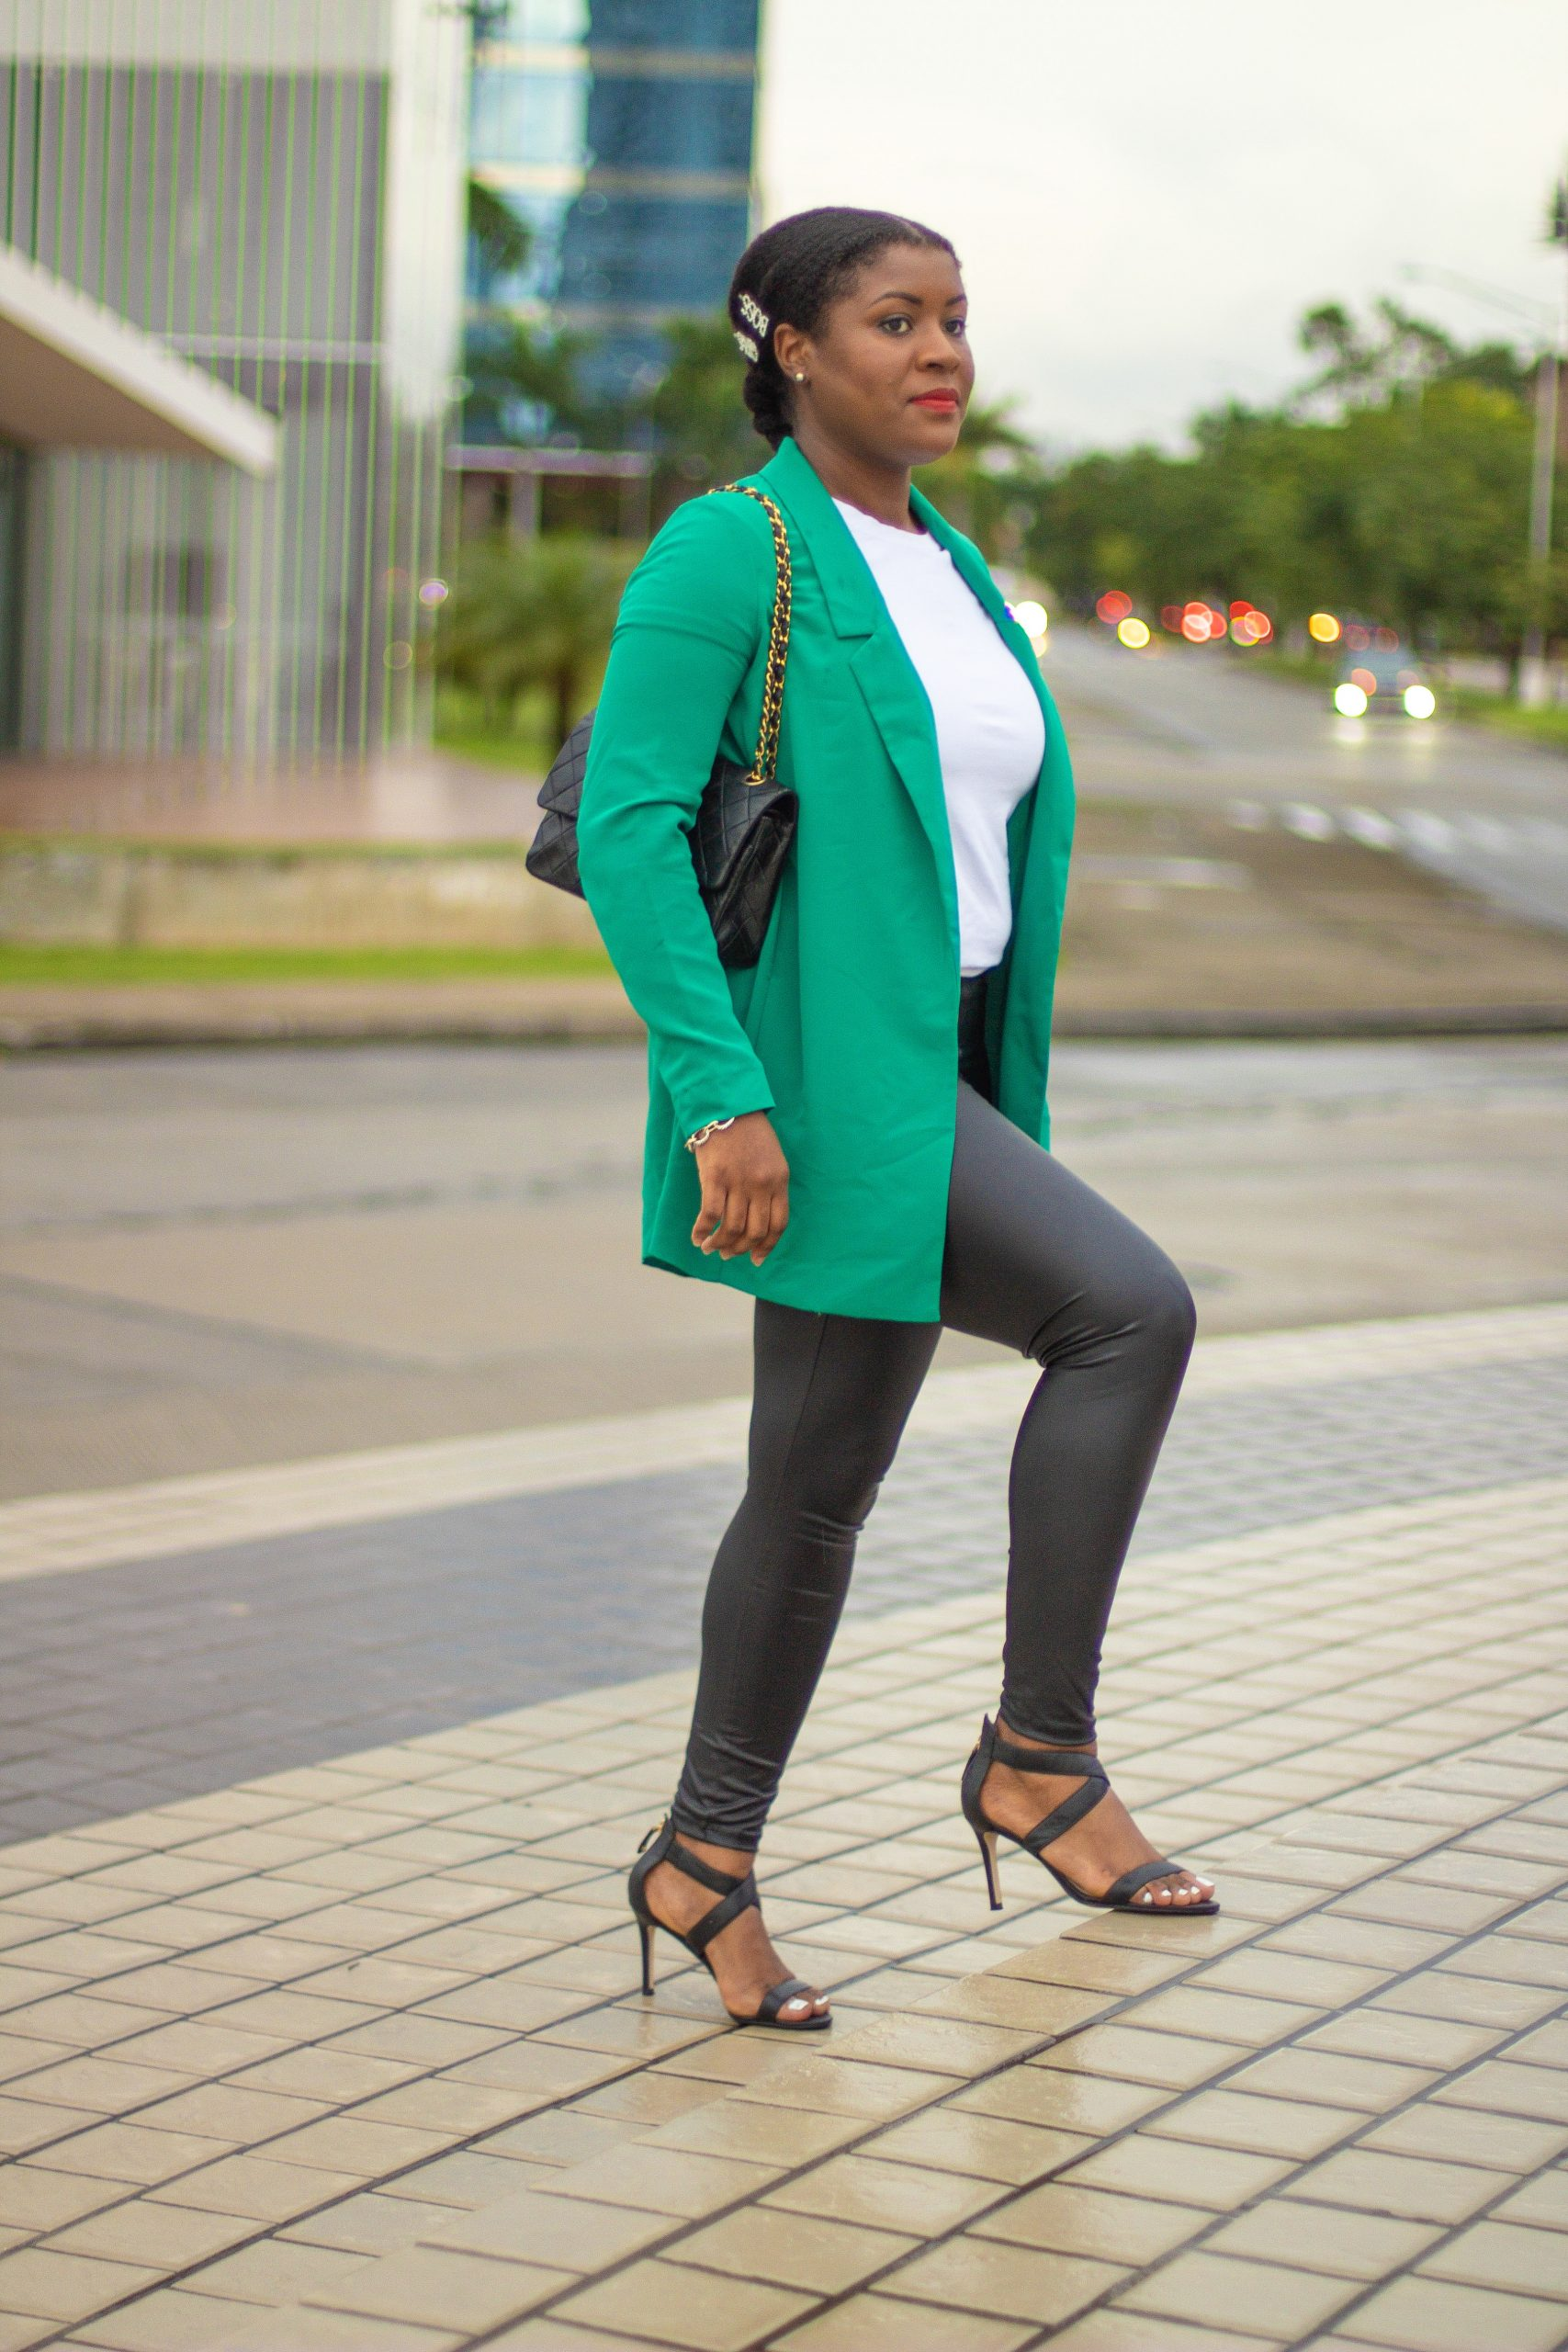 How To Style Leather Leggings In 5 Easy Ways | Travel Beauty Blog